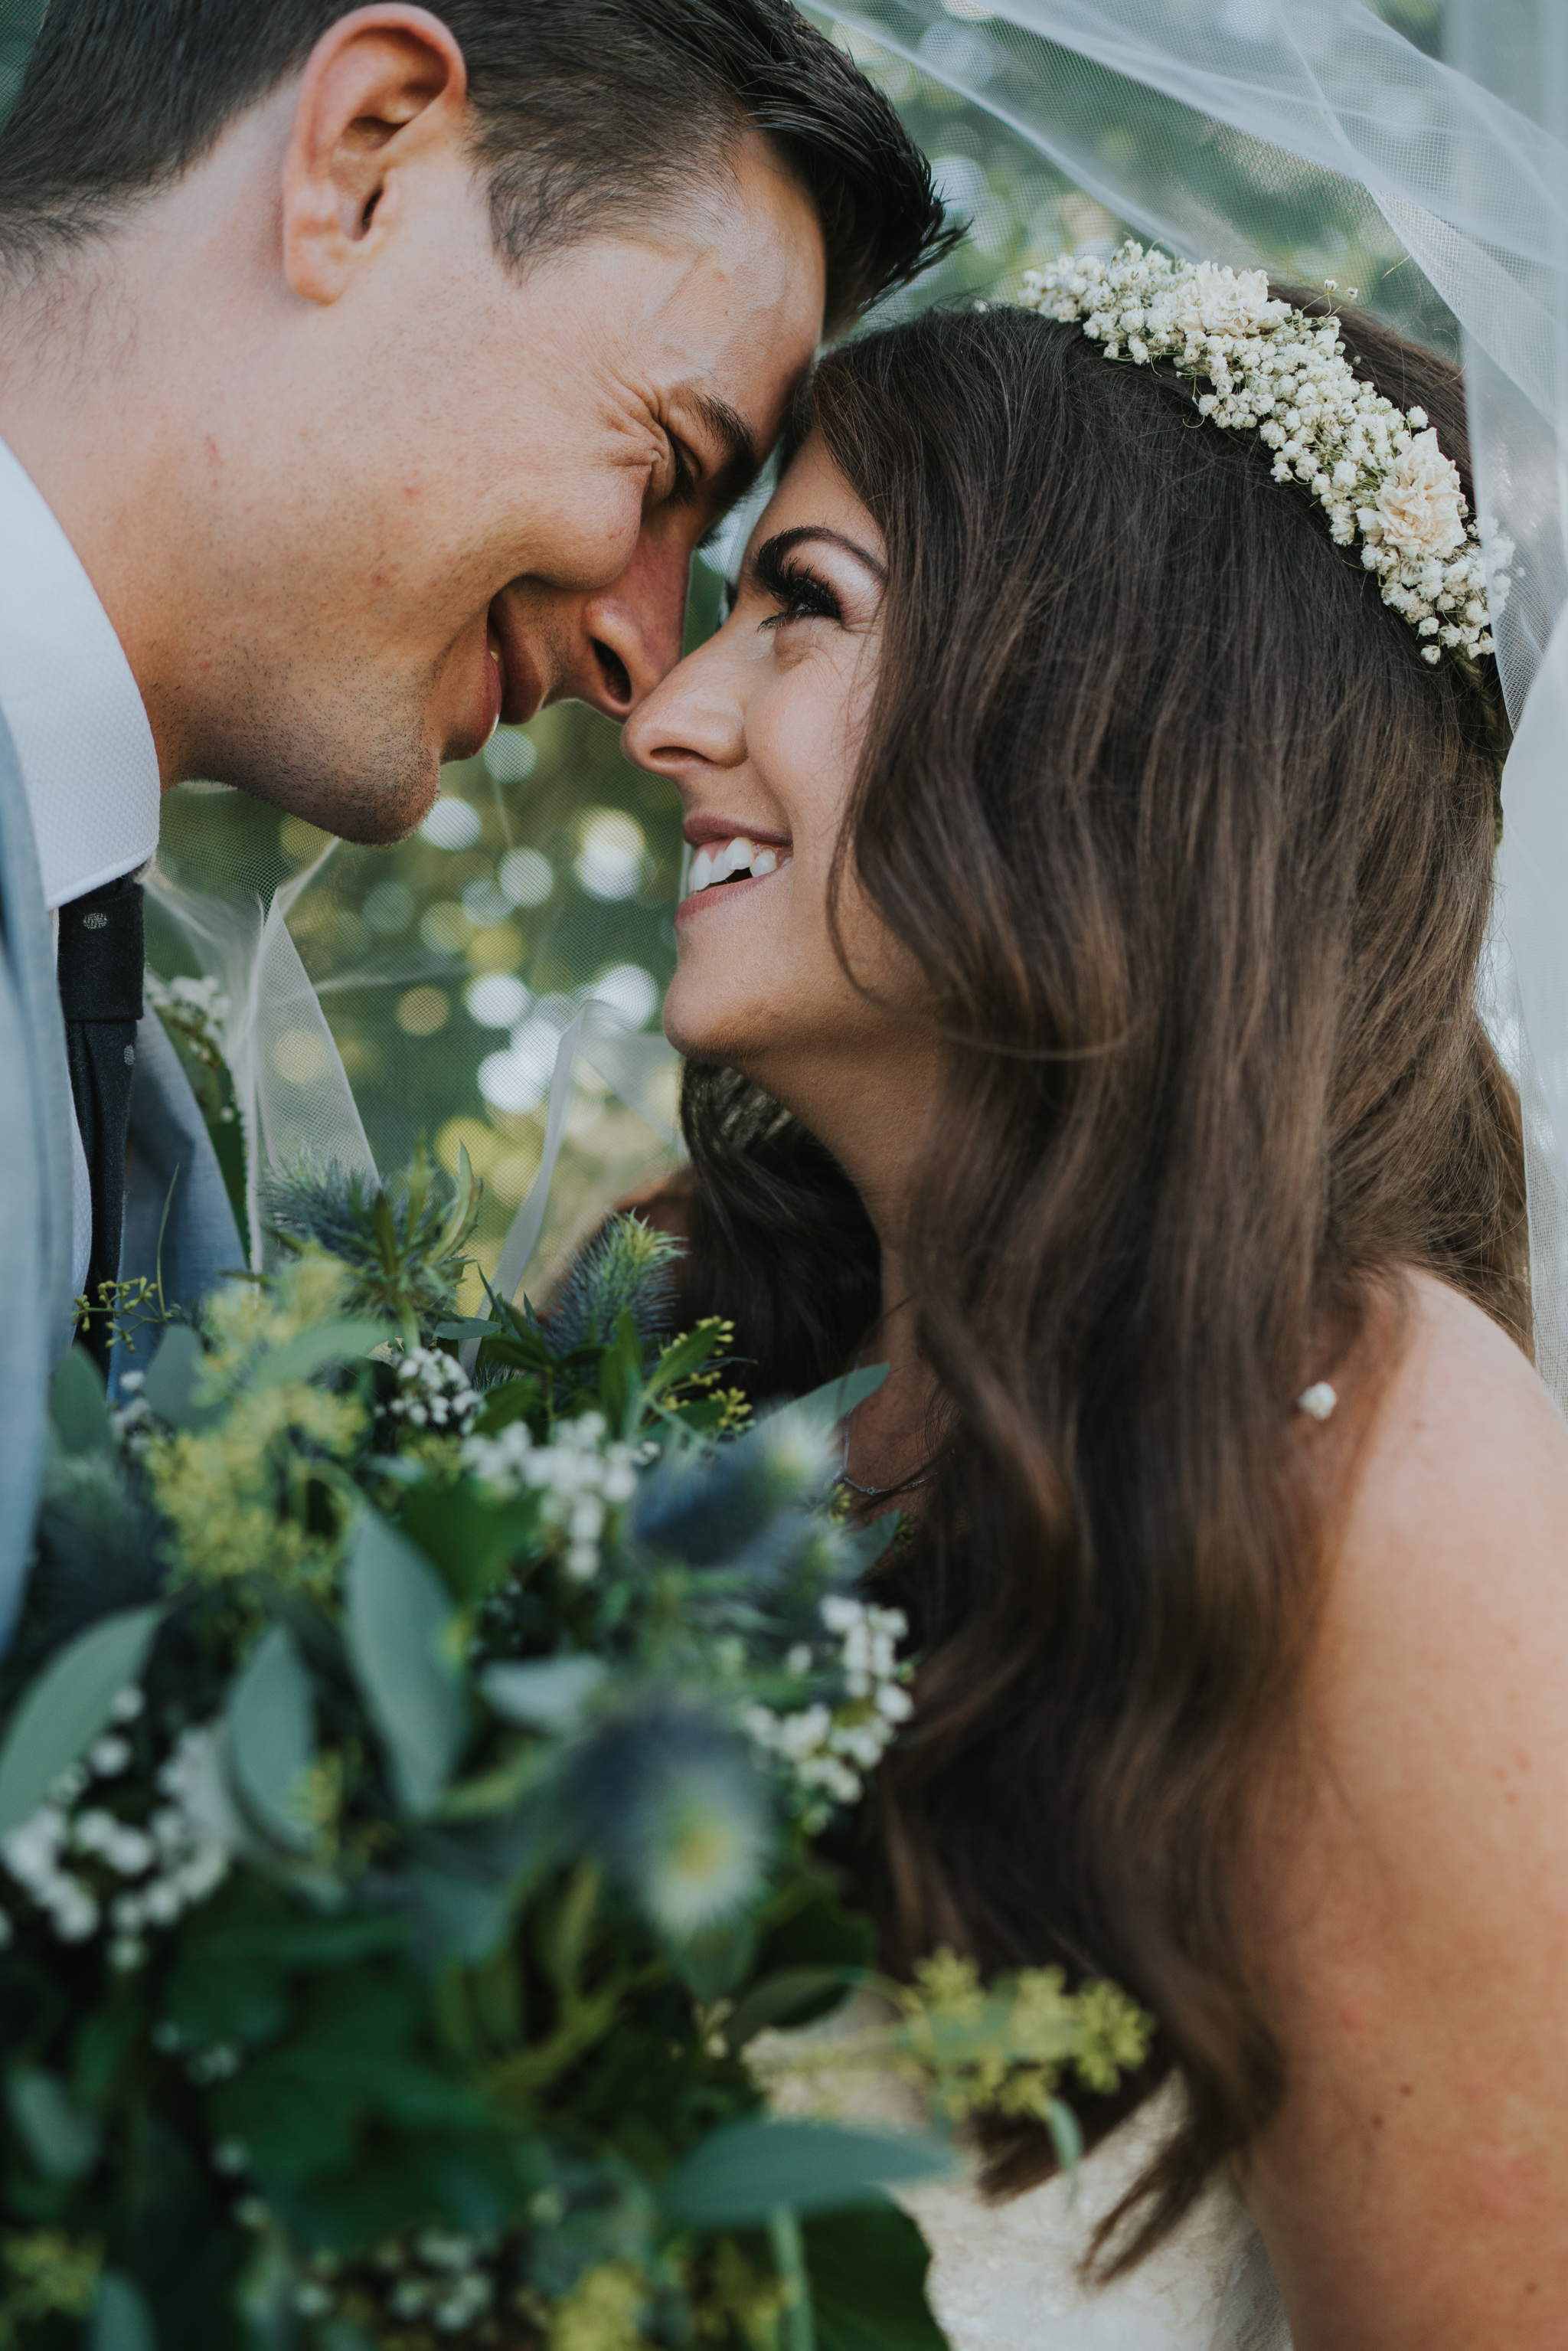 Sophie-Christian-Prested-Hall-DIY-Boho-Outdoor-Wedding-Grace-Elizabeth-Alternative-Wedding-Photographer-Colchester-Essex (79 of 113).jpg